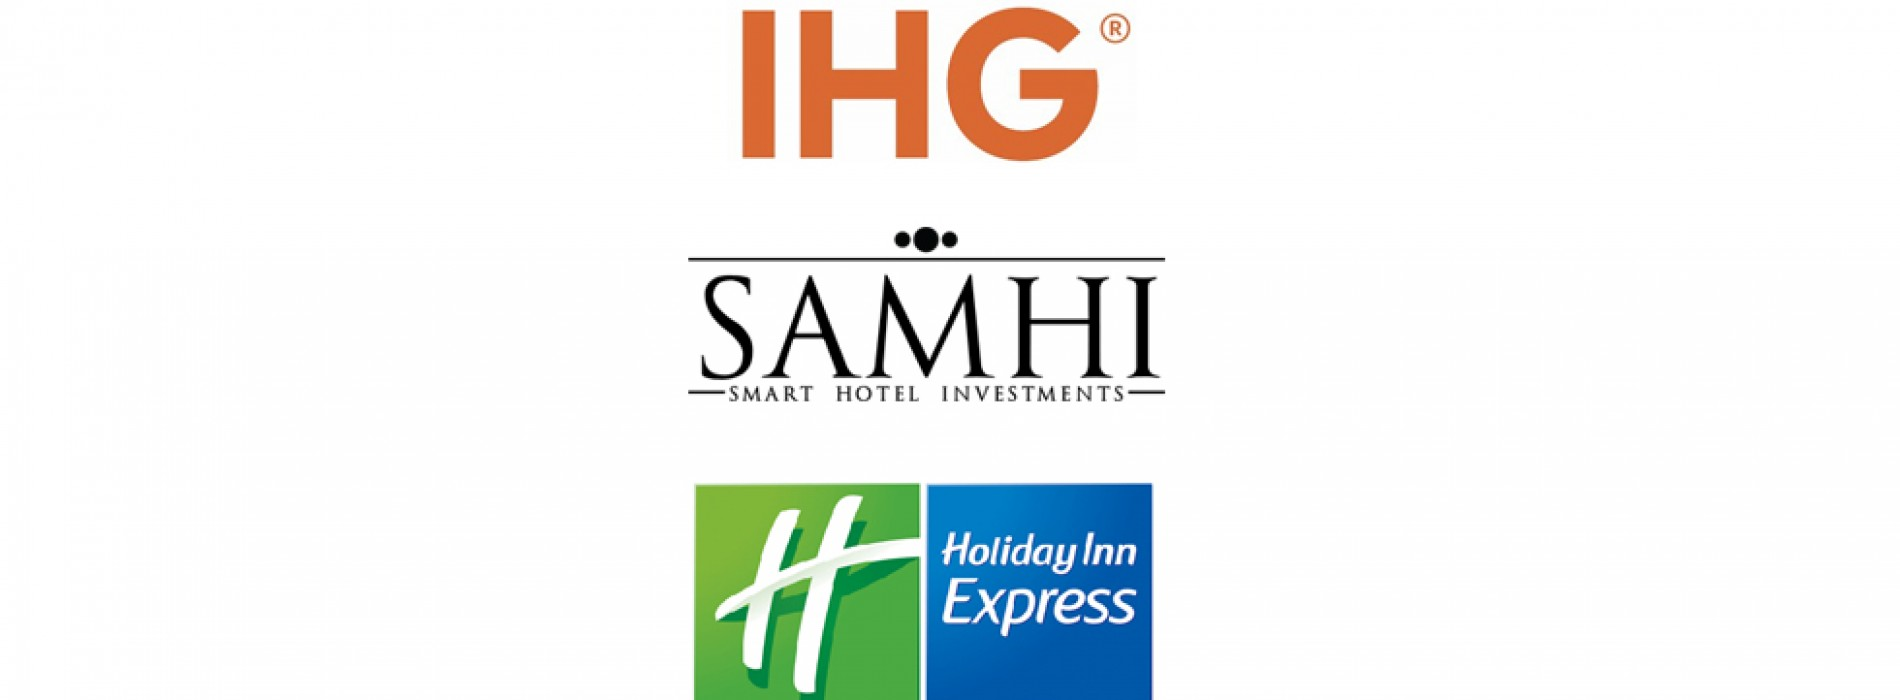 IHG partners with SAMHI to expand Holiday Inn Express portfolio in India